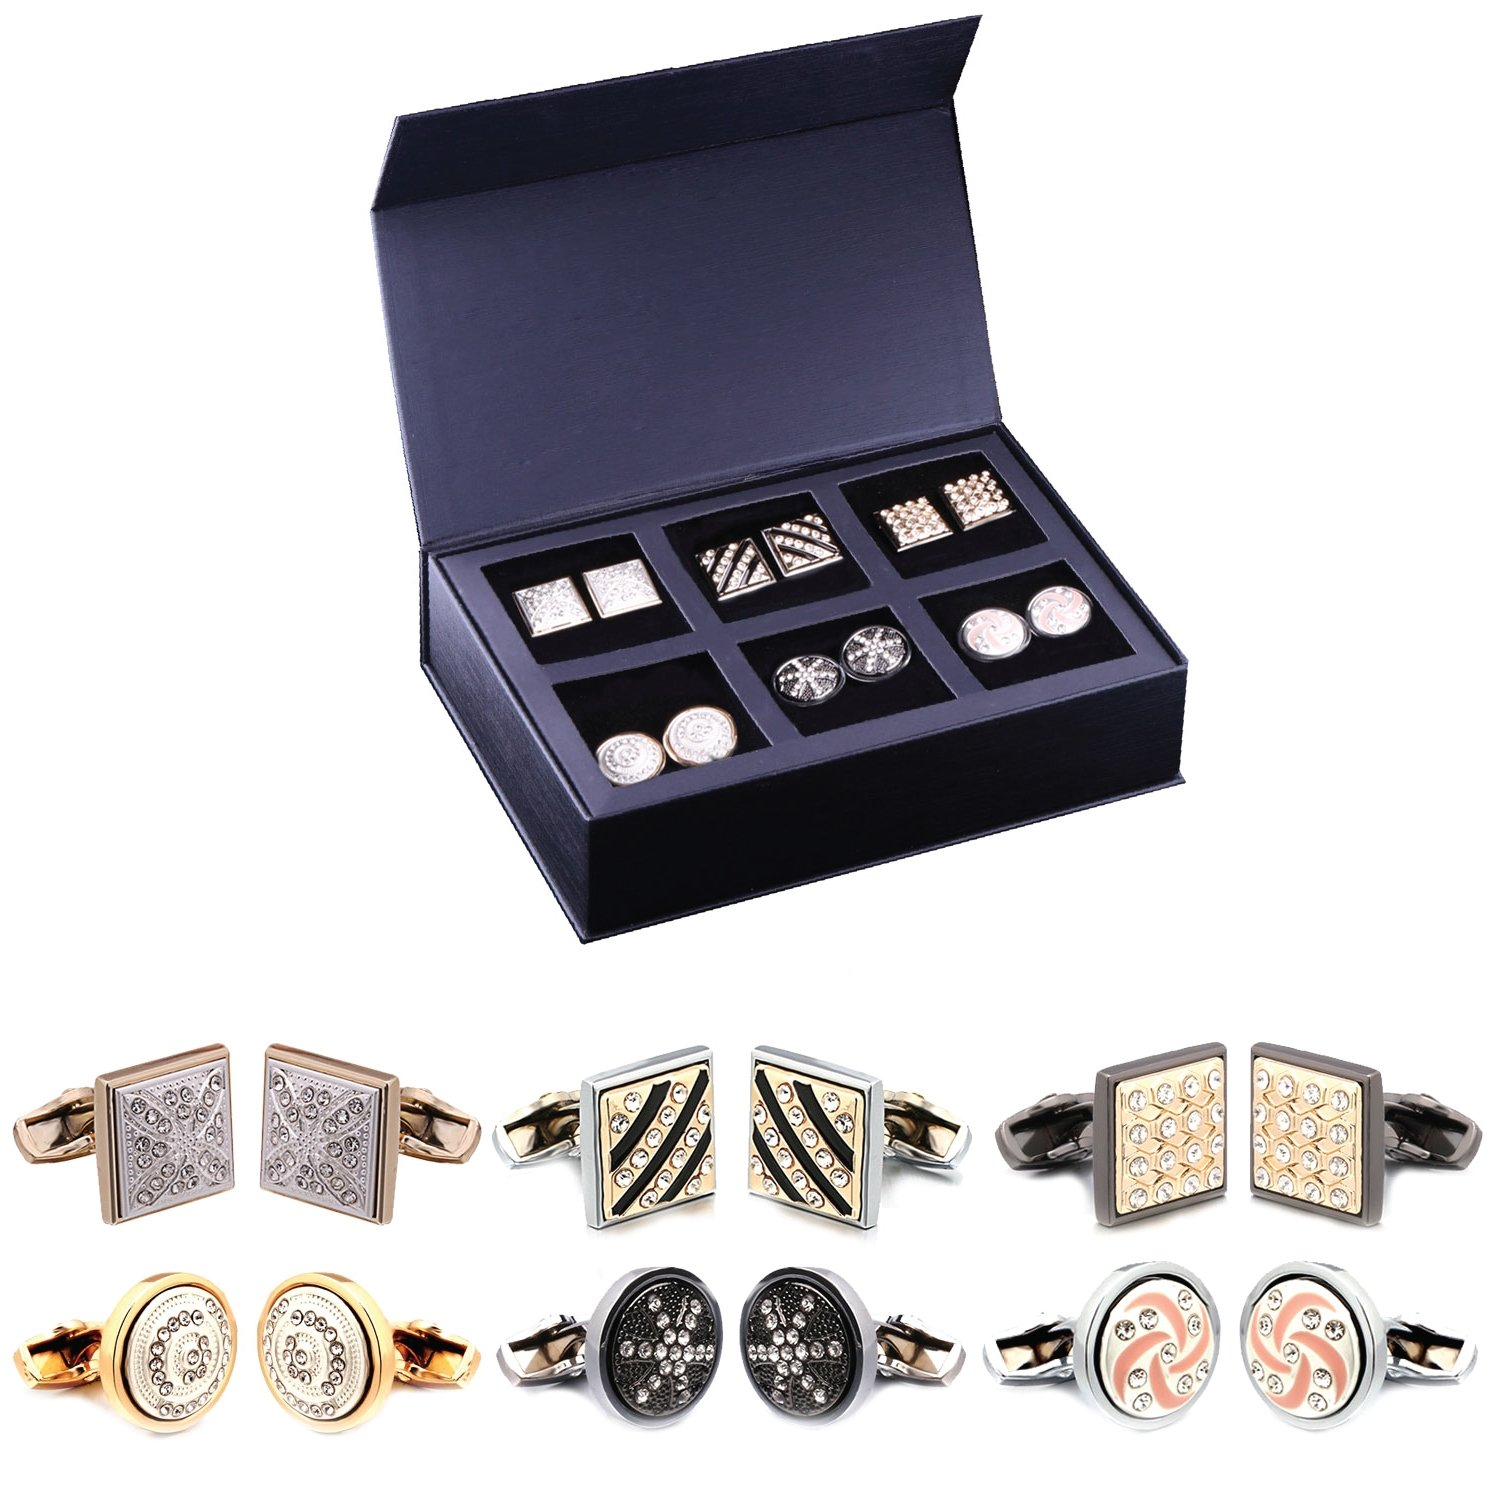 1920s Mens Accessories: Gloves, Spats, Pocket Watch, Collar Bar BodyJ4You 12PC Cufflinks Button Shirt Men Black Silvertone Goldtone Jewelry Set Gift Box 6 Pairs $29.90 AT vintagedancer.com